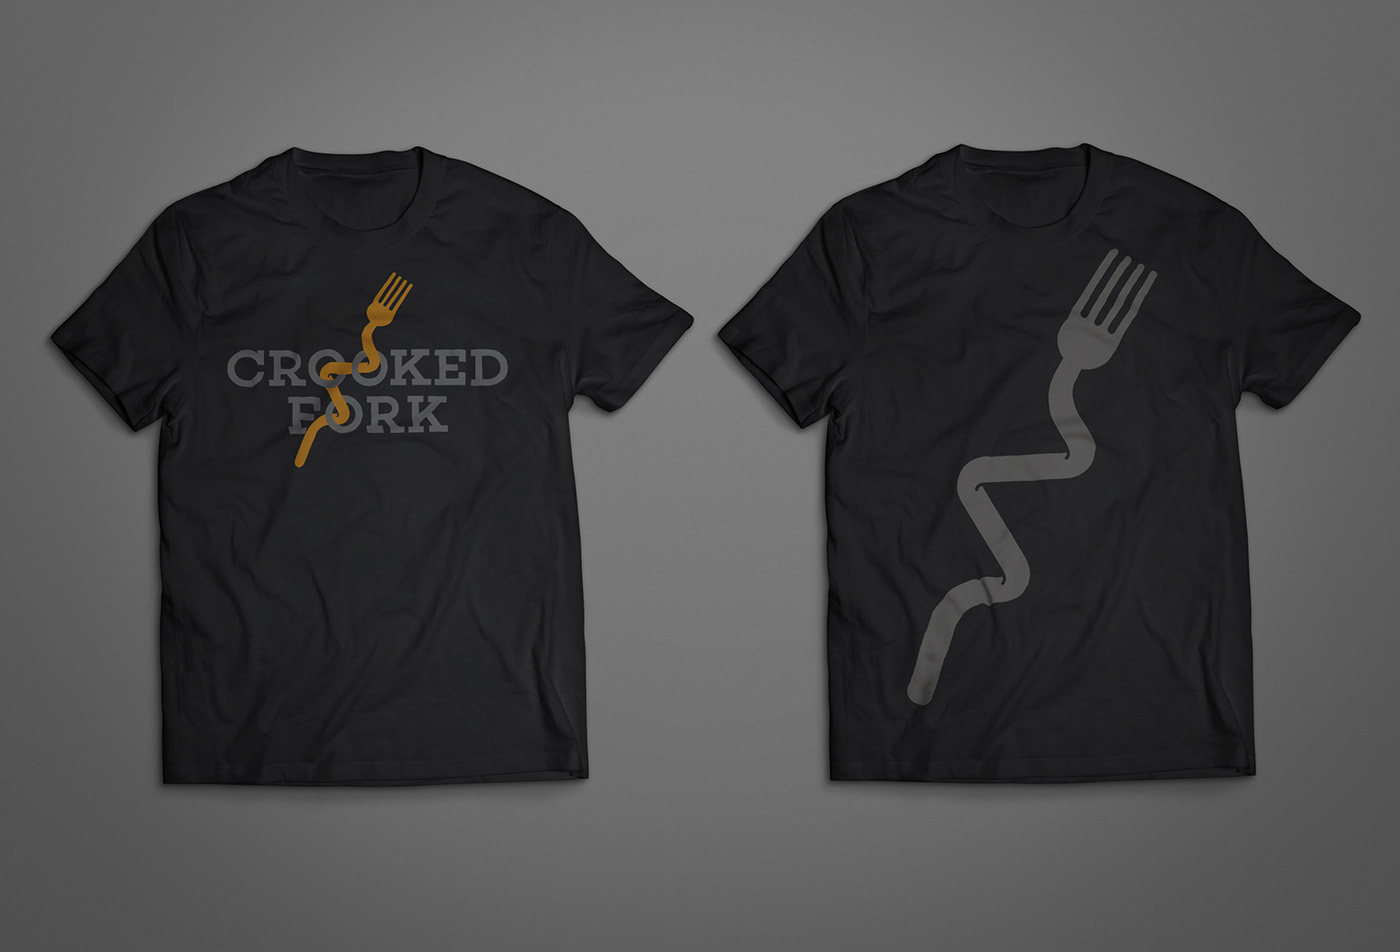 crooked-fork-shirts